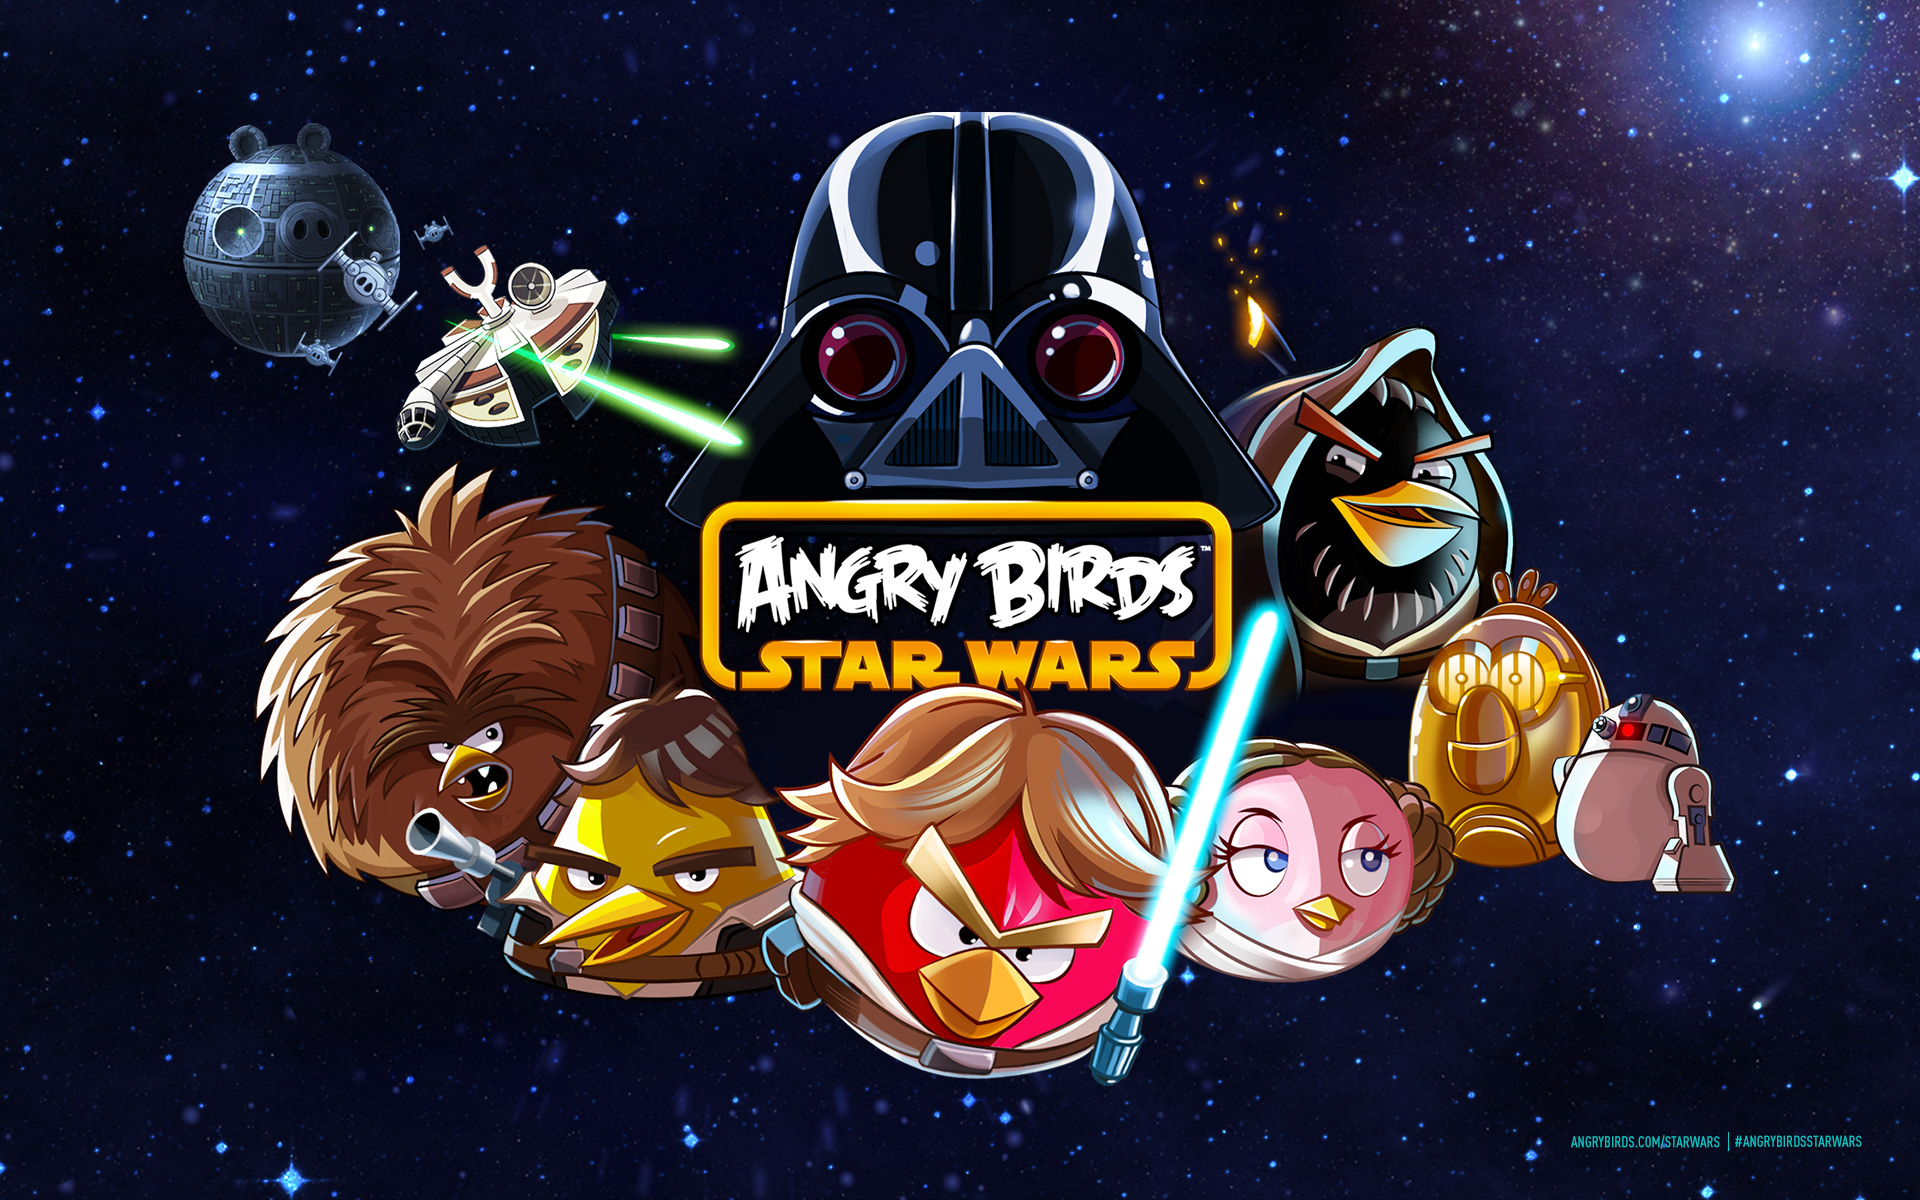 Angry Birds: Angry Birds Star Wars